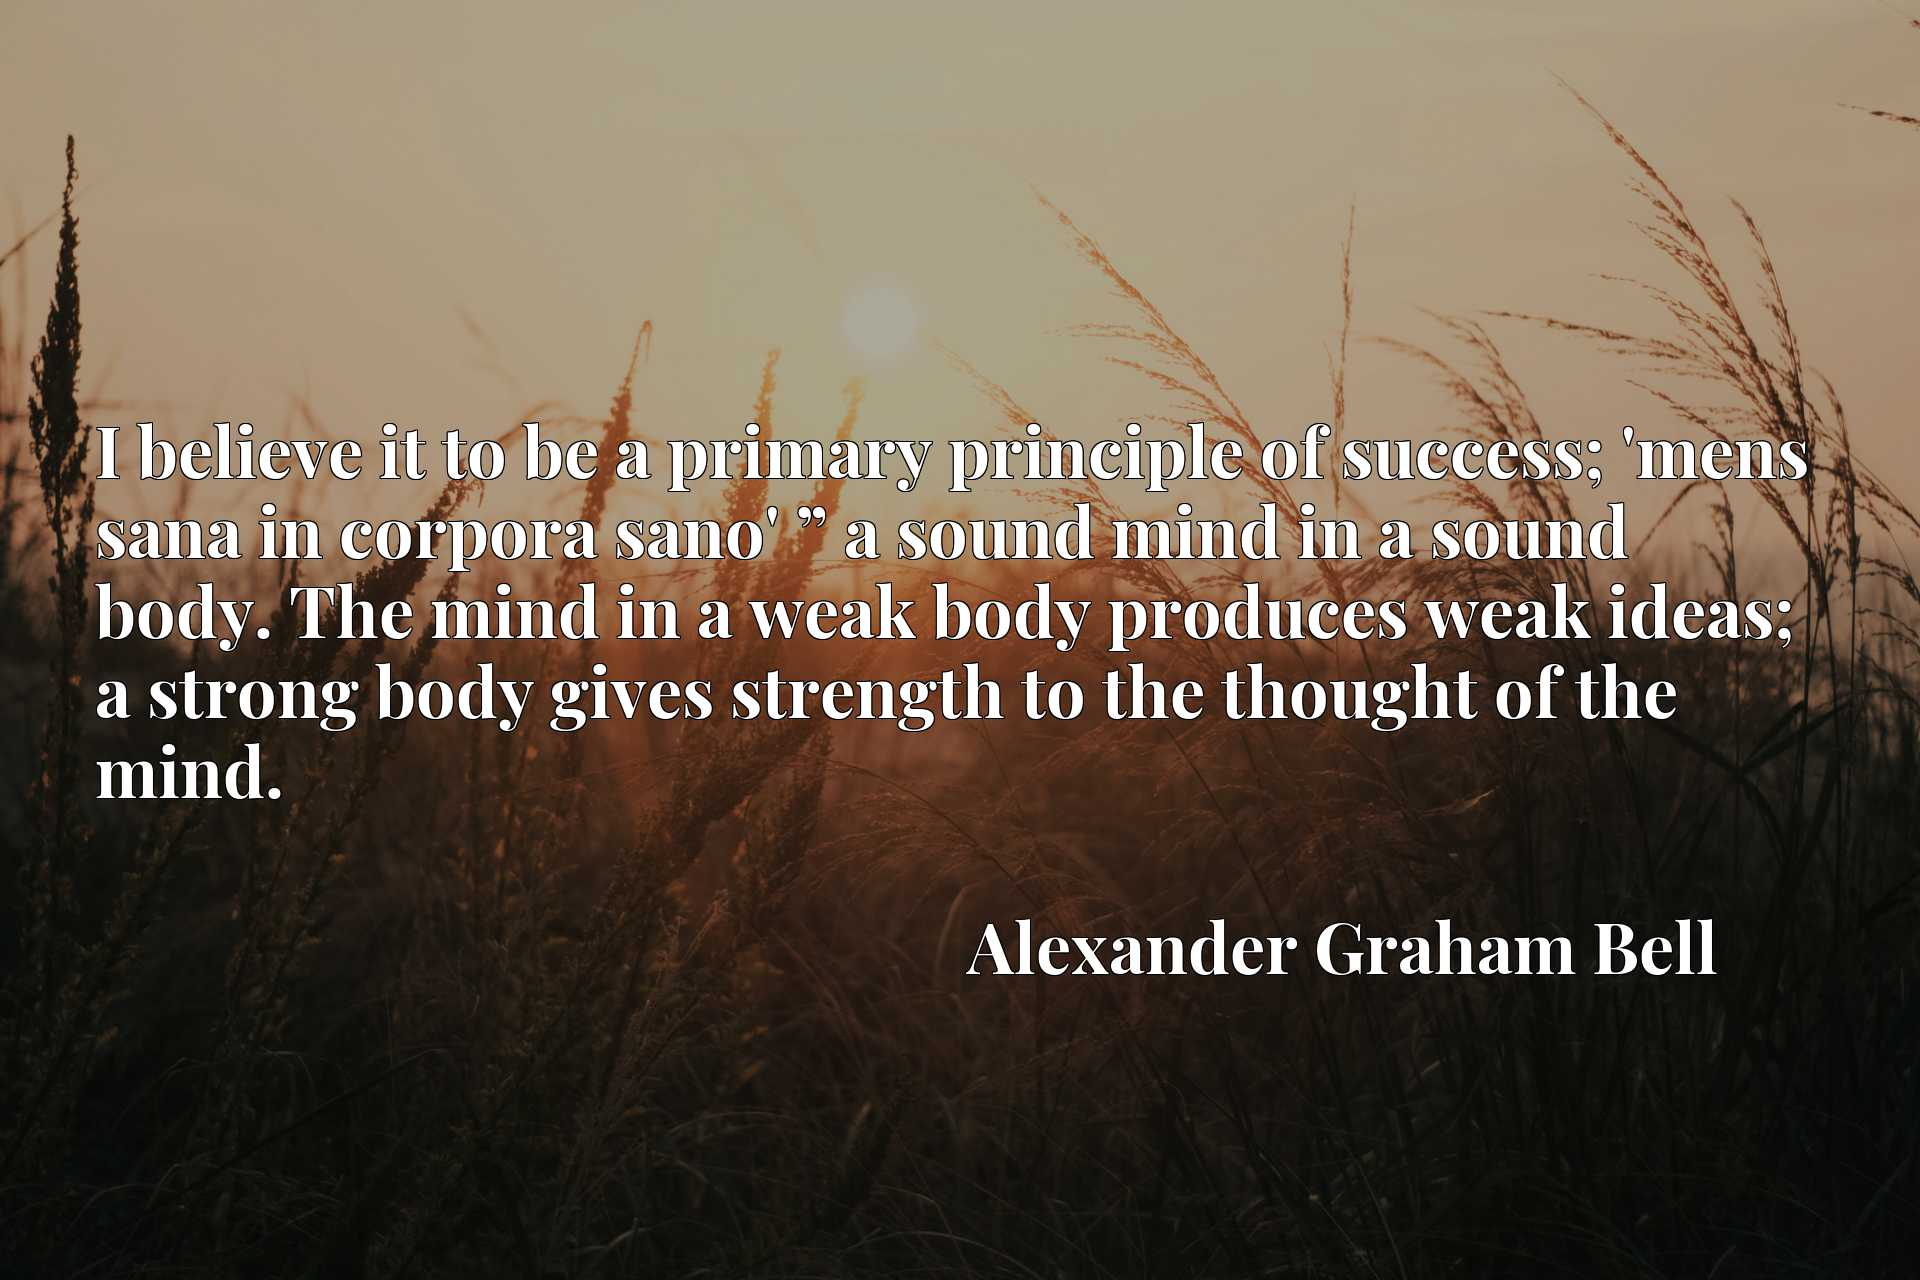 """I believe it to be a primary principle of success; 'mens sana in corpora sano' """" a sound mind in a sound body. The mind in a weak body produces weak ideas; a strong body gives strength to the thought of the mind."""